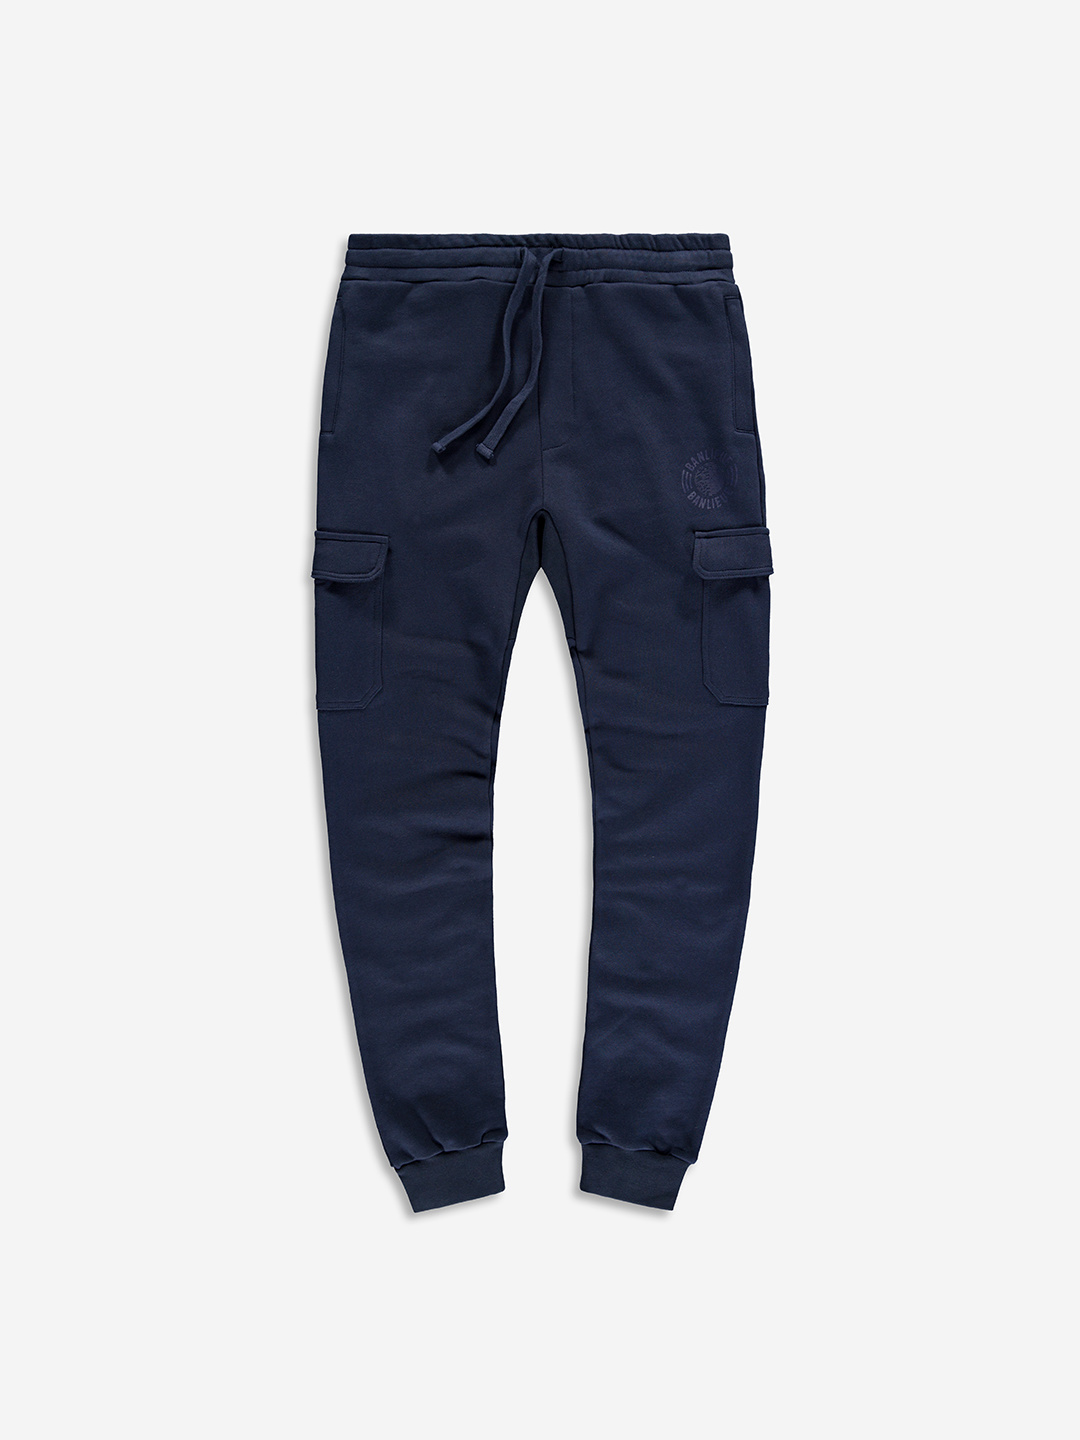 TONAL SWEATPANTS NAVY